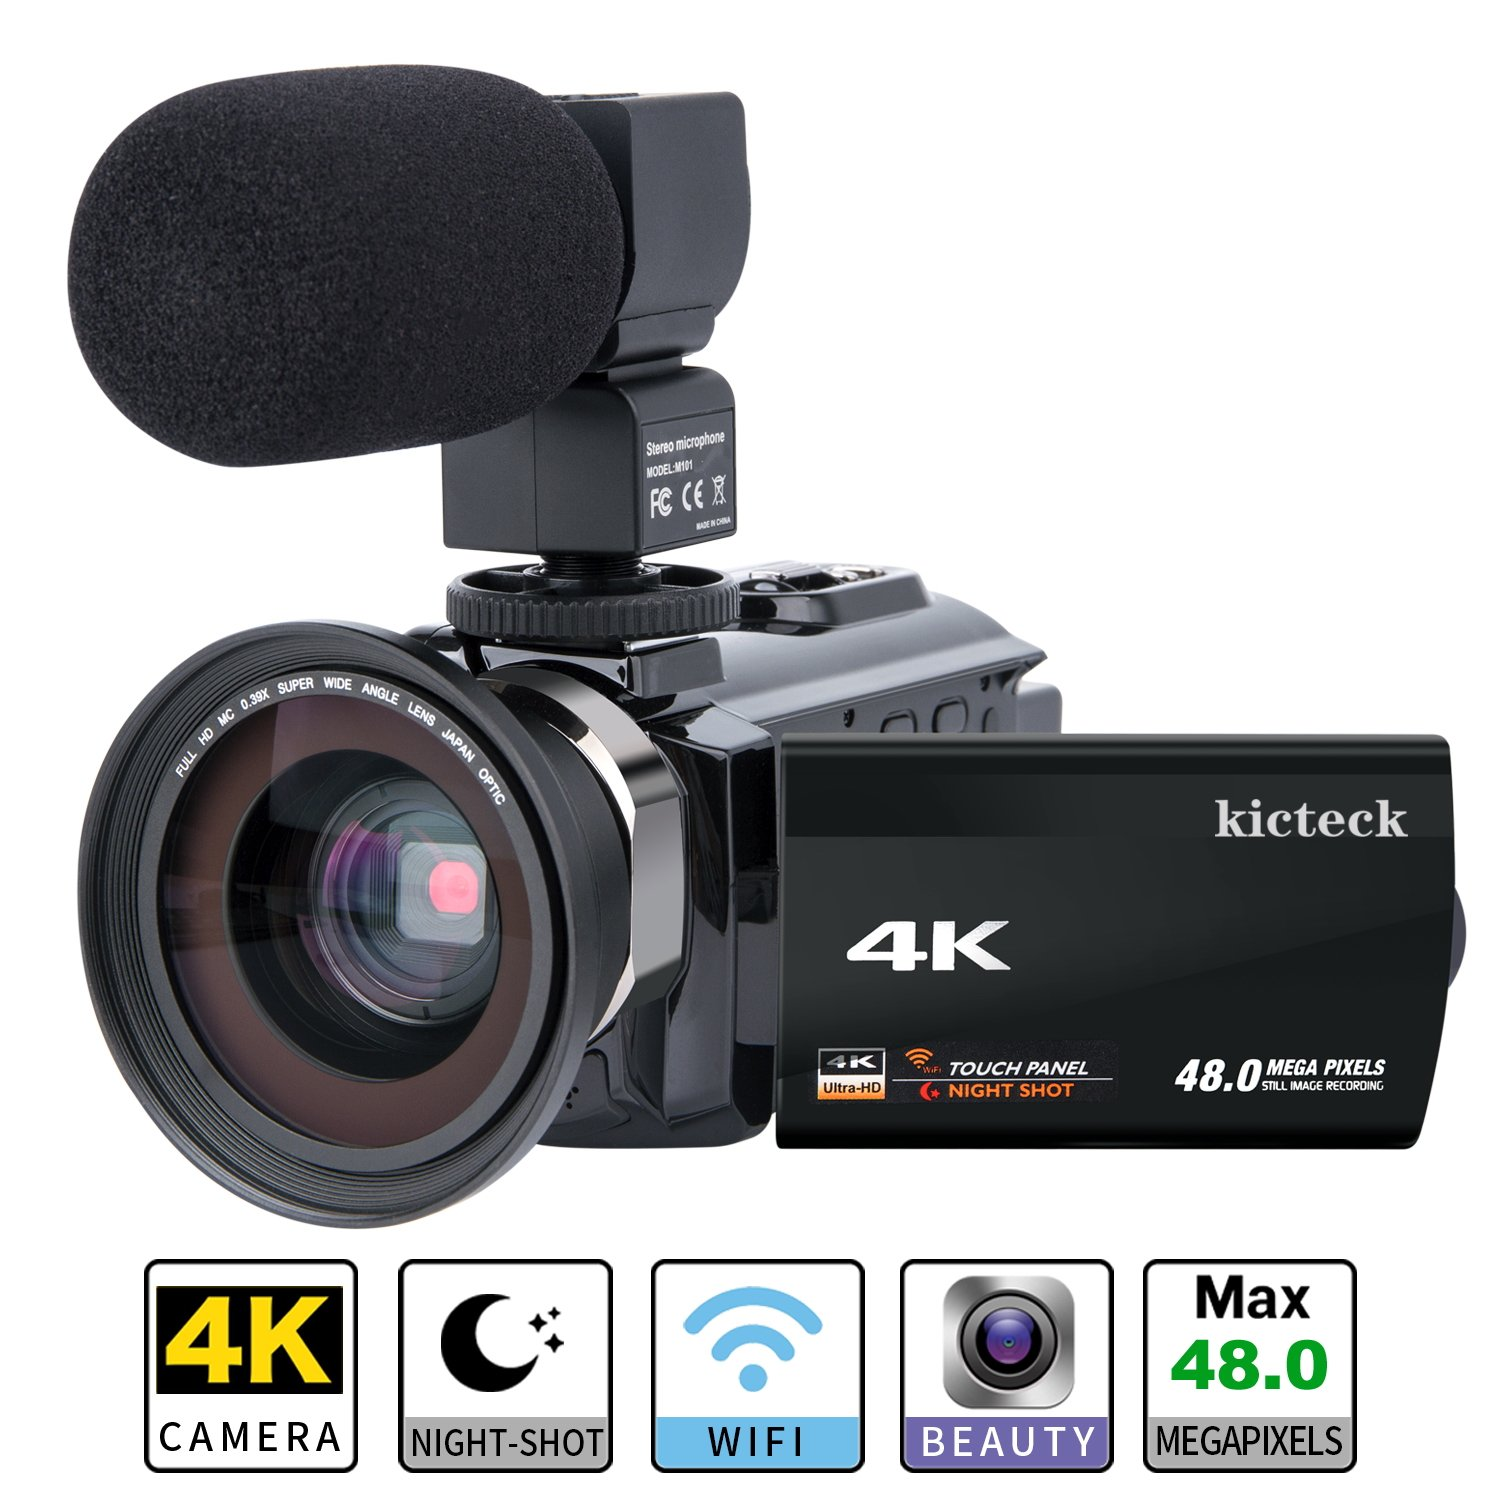 Video Camera Camcorder 4K kicteck Ultra HD Digital WiFi Camera 48.0MP 3.0 inch Touch Screen Night Vision 16X Digital Zoom Recorder with External Microphone and Wide Angle Lens,2 Batteries(4KMW) by kicteck